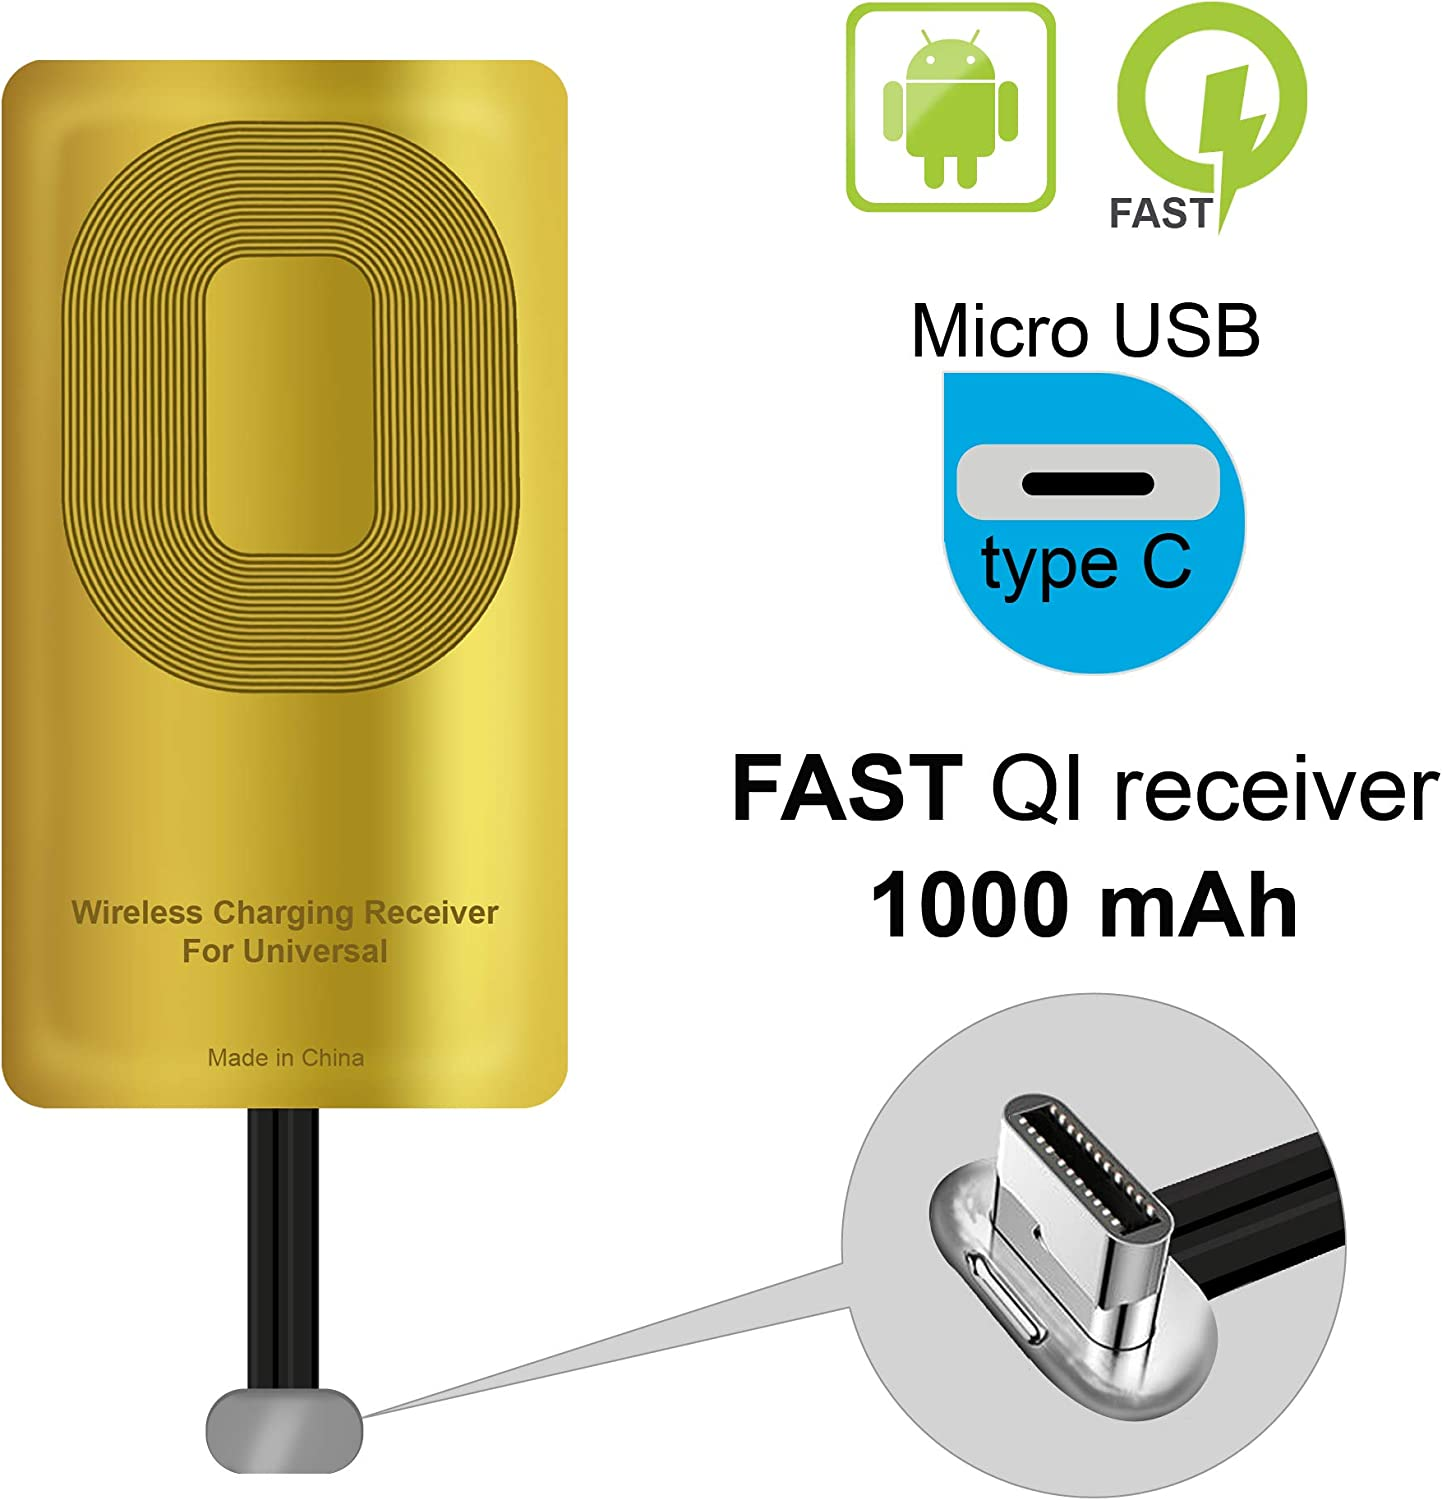 QI Receiver Type C for Google Pixel 2XL-XL-LG V20- LG G5- Motorola G6- G6 Plus- HTC 10- Samsung Galaxy A5(2017)-A7(2017)- Qi Wireless Receiver-QI Receiver-Type C Wireless Charging Receiver